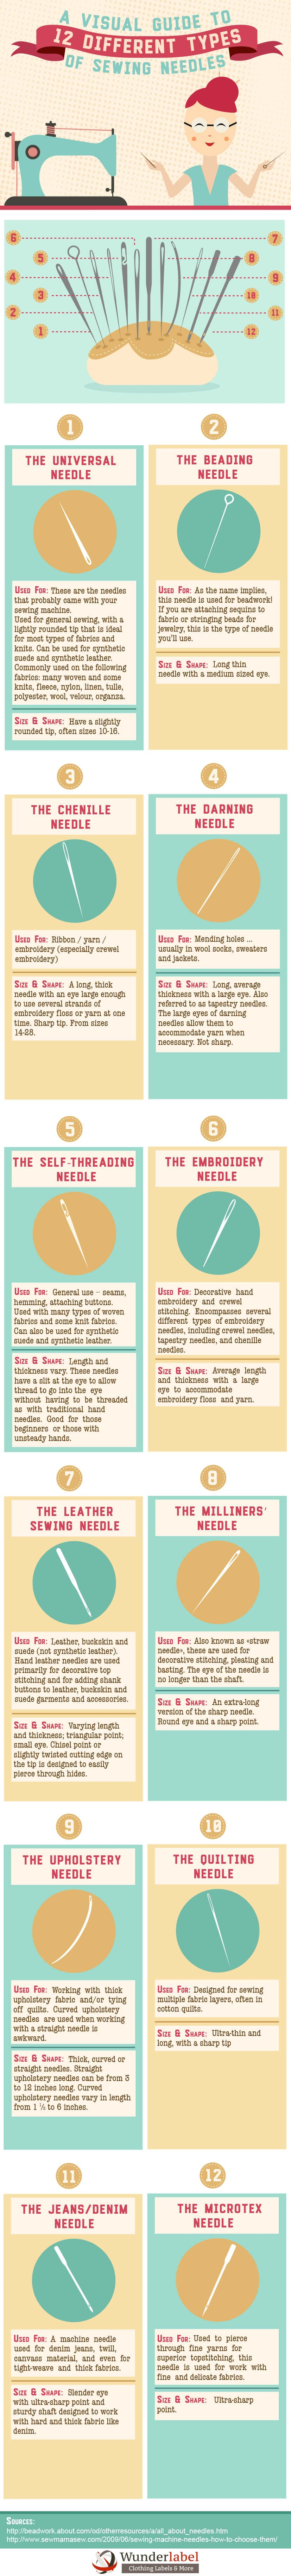 12_types_of_sewing_needles_infographic_small